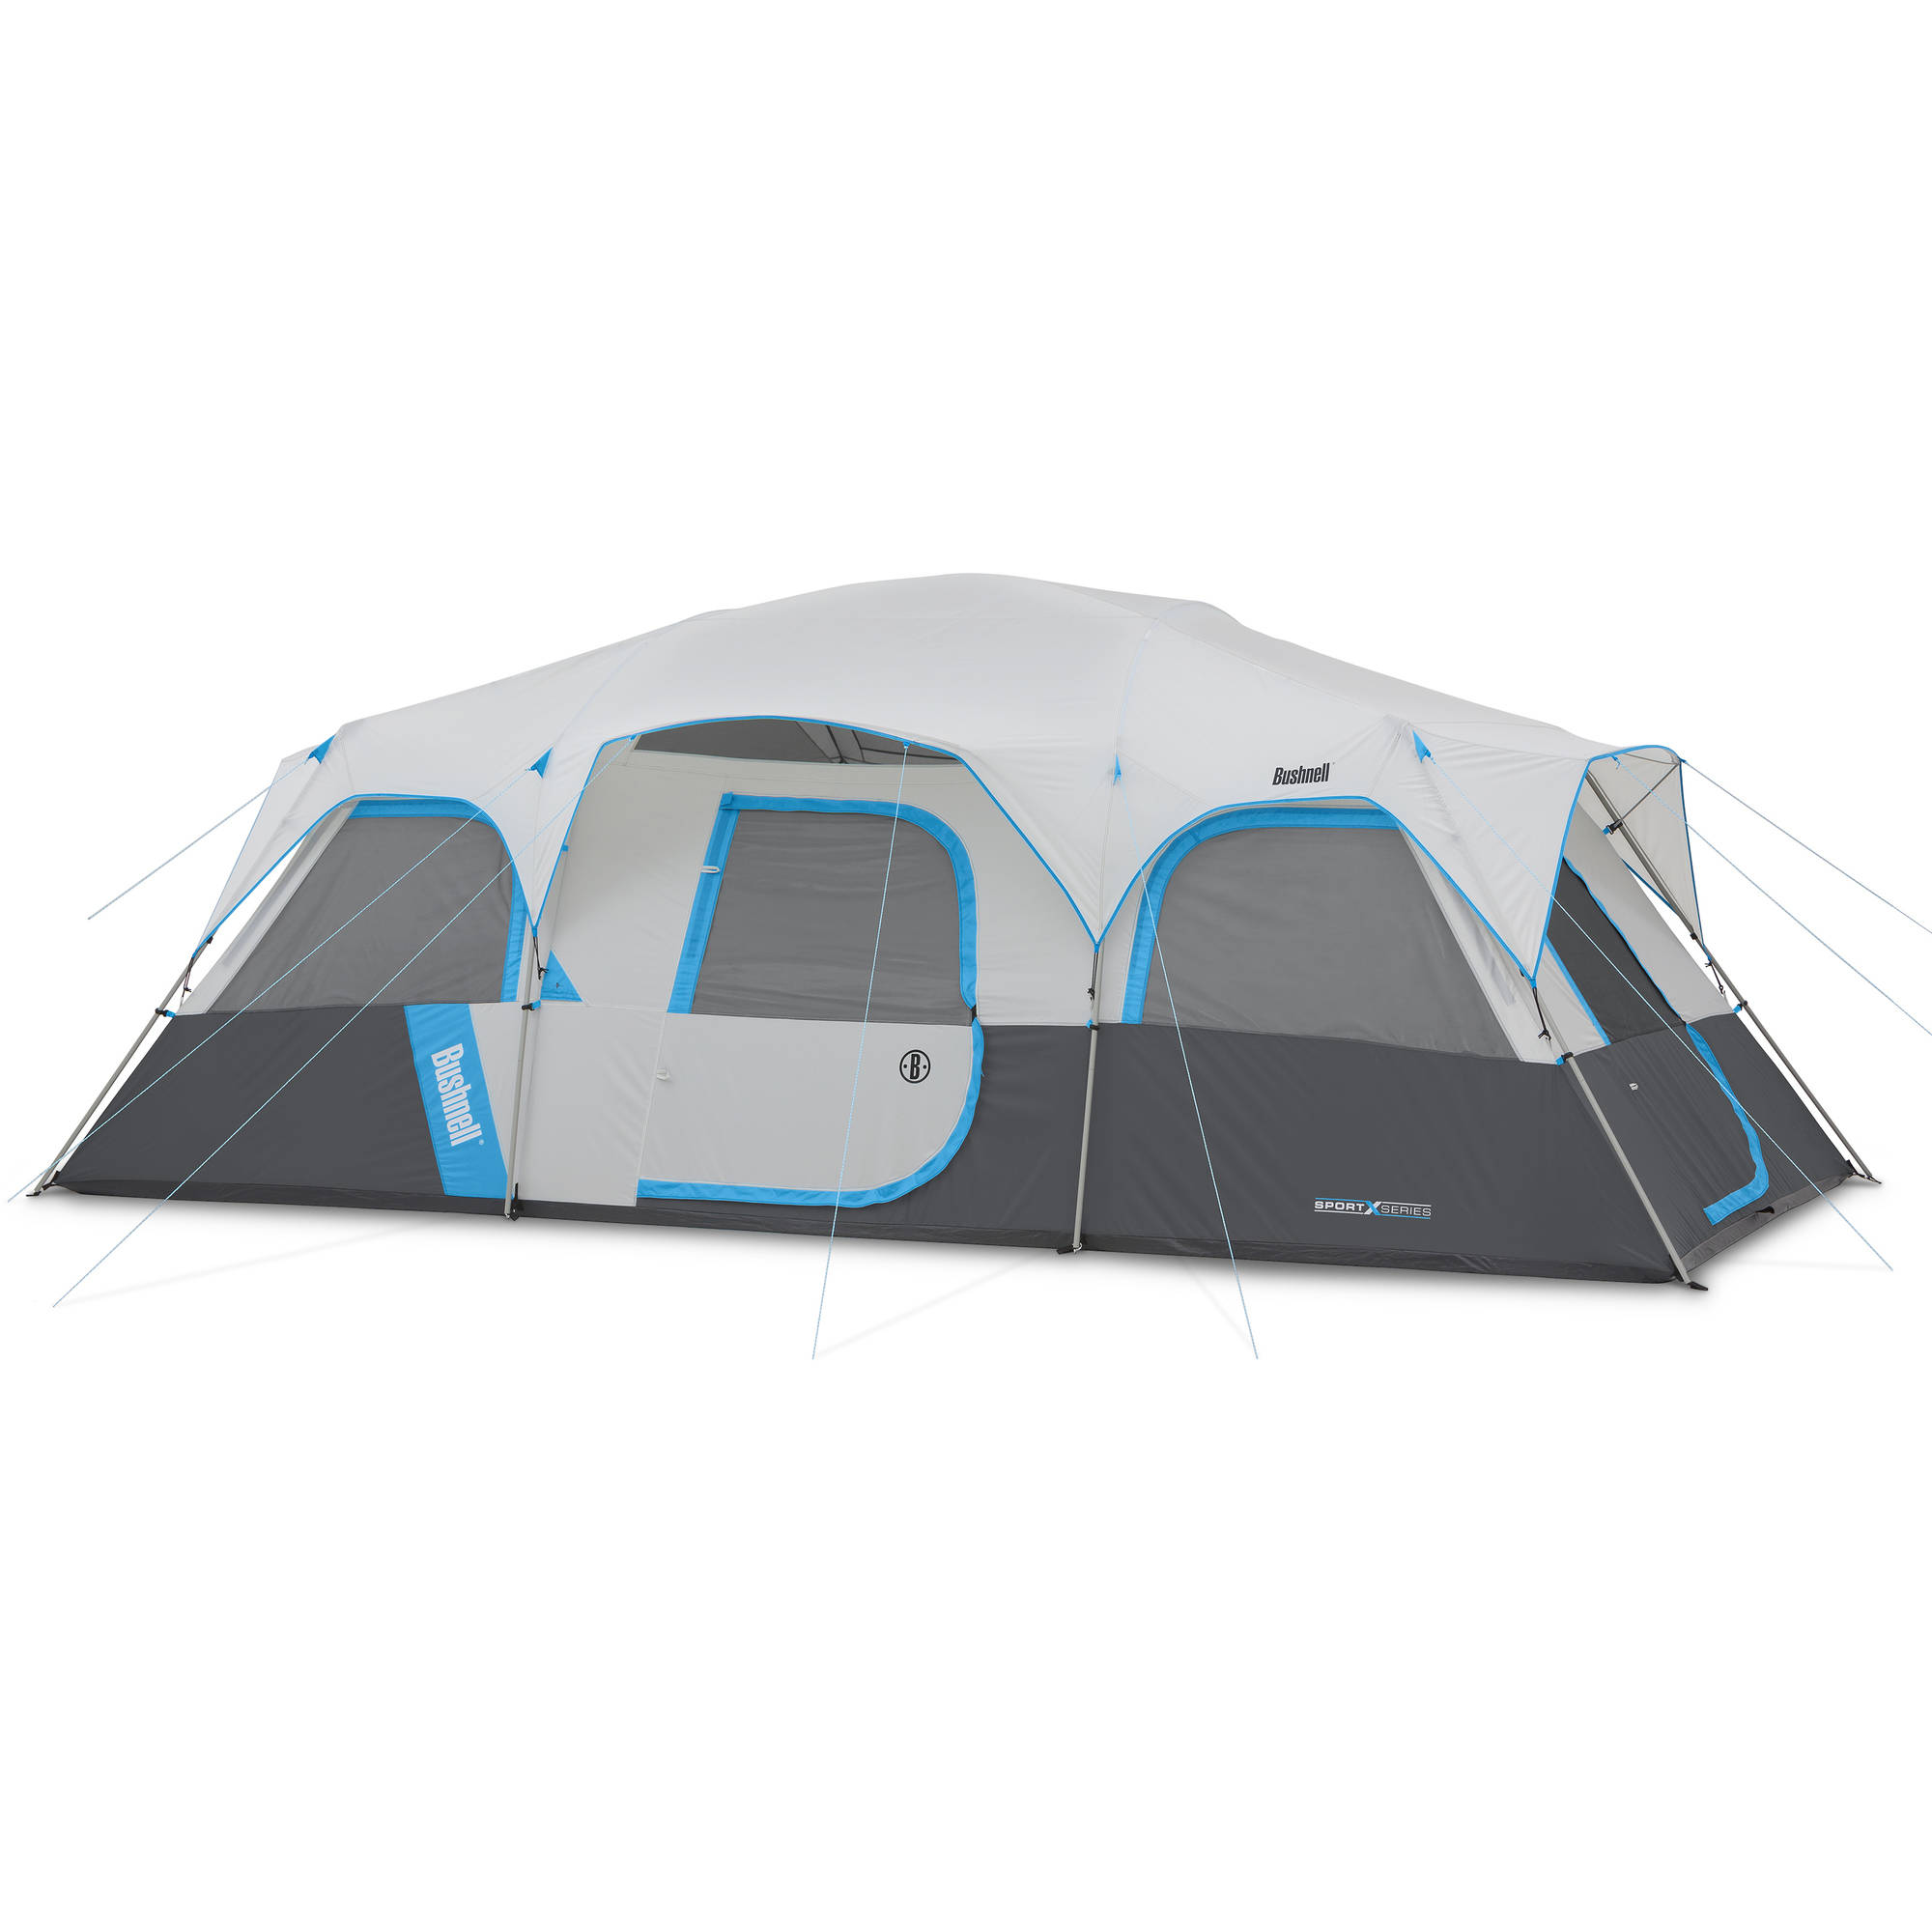 Bushnell Sport Series 20' x 10' Cabin Tent, Sleeps 12 by